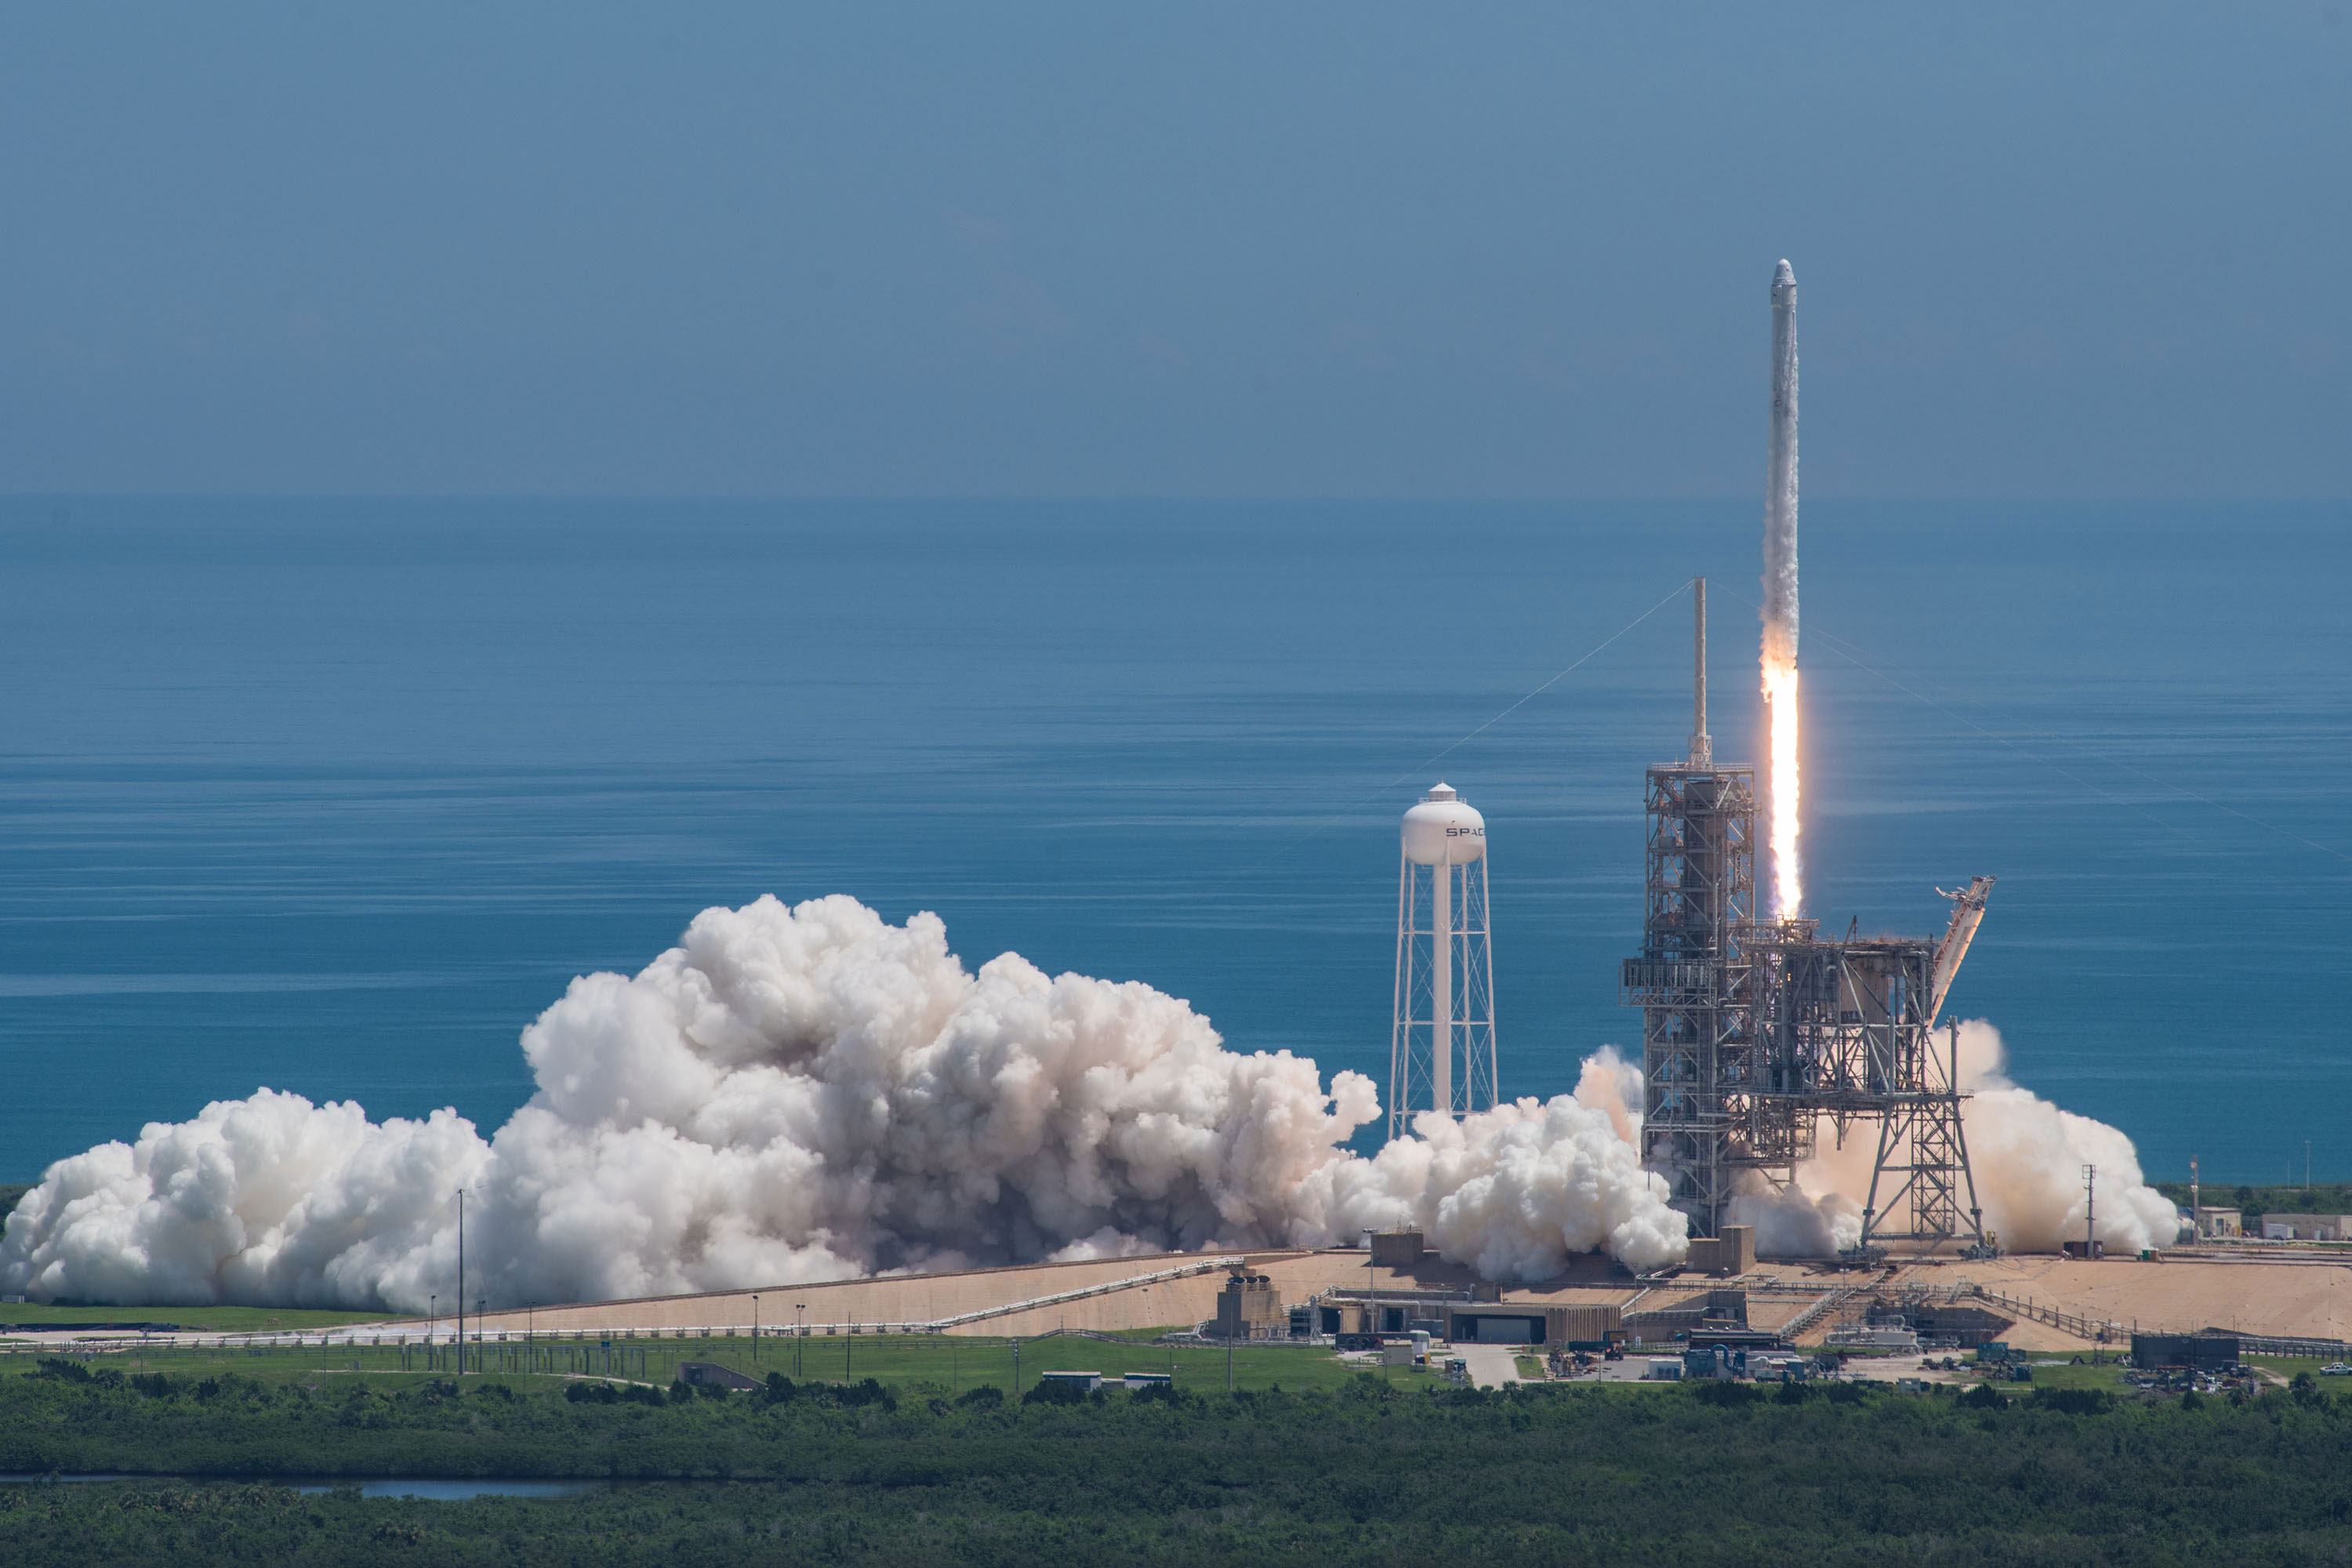 spacex dragon launch - HD2048×1365